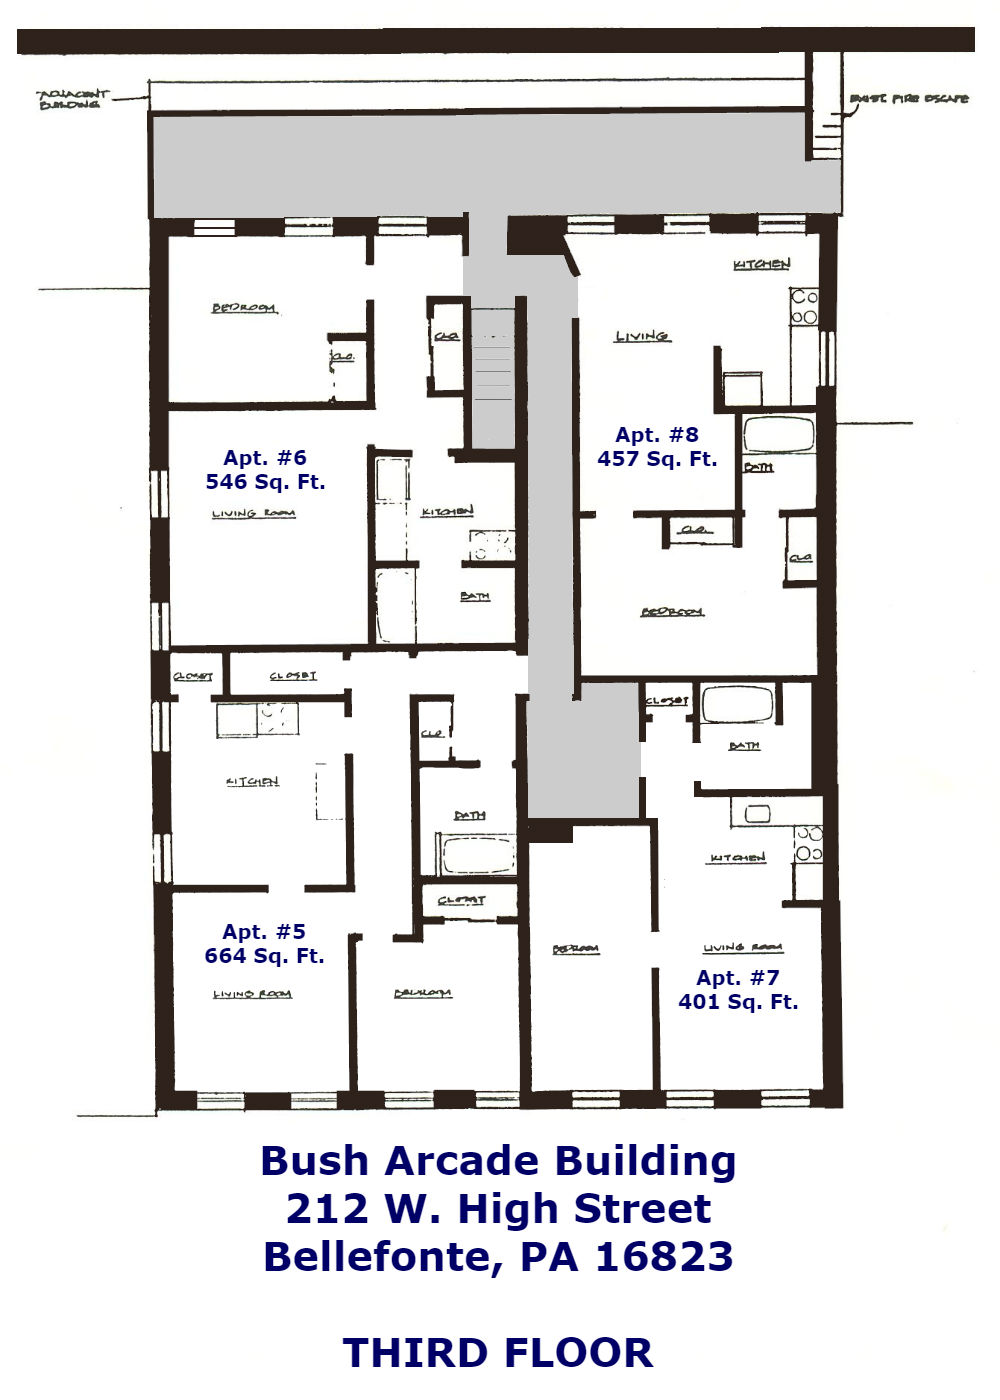 Floor Plans for apartment #5-8 at the Bush Arcade Building in Bellefonte PA.